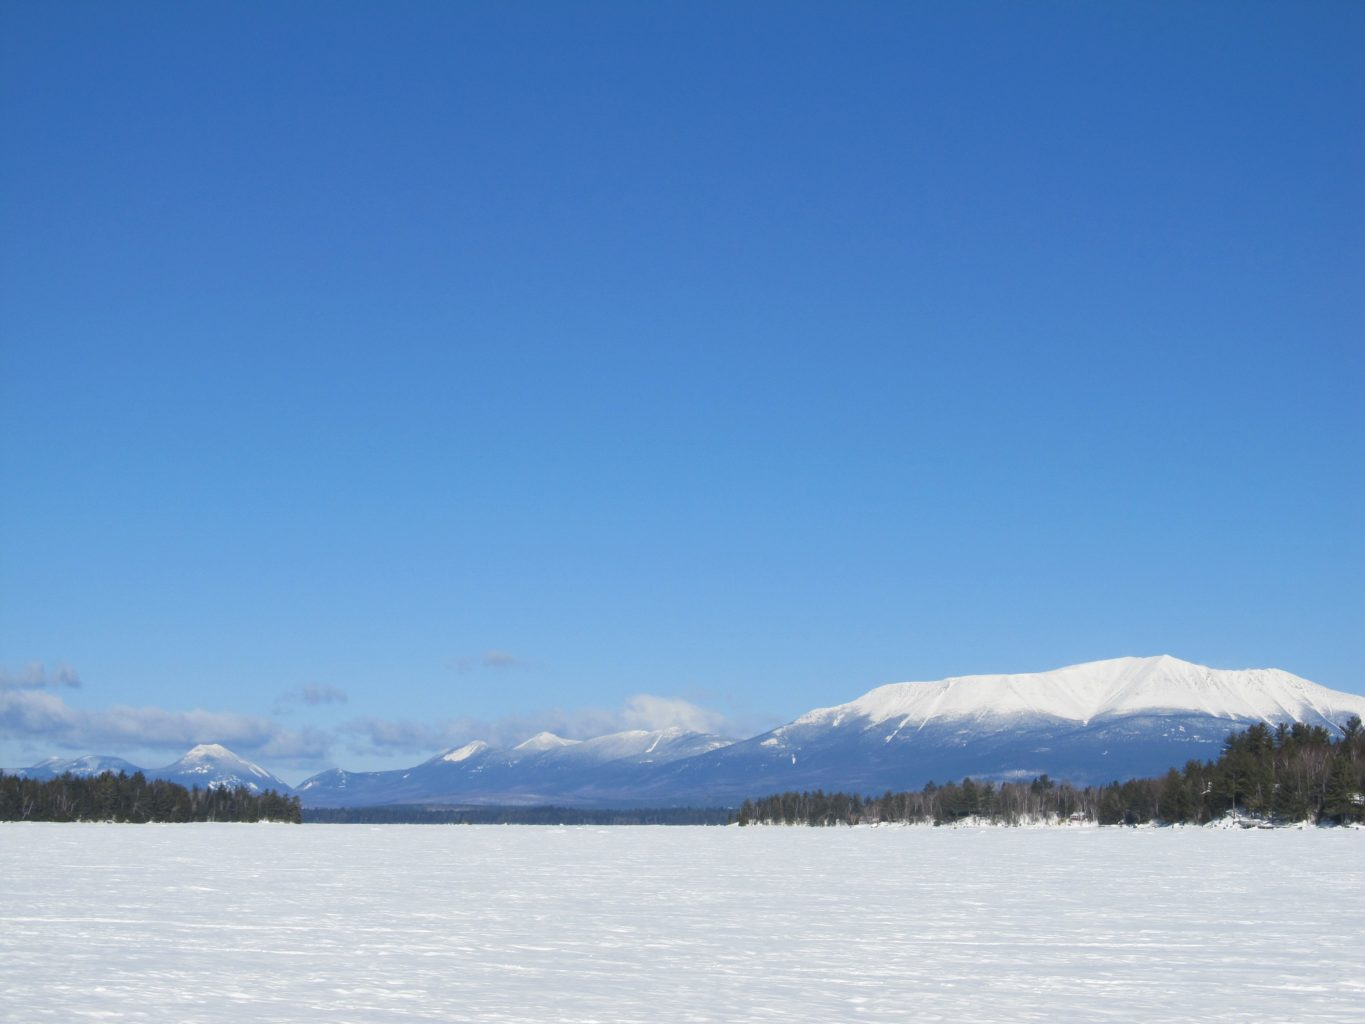 Baxter State Park in February 2017